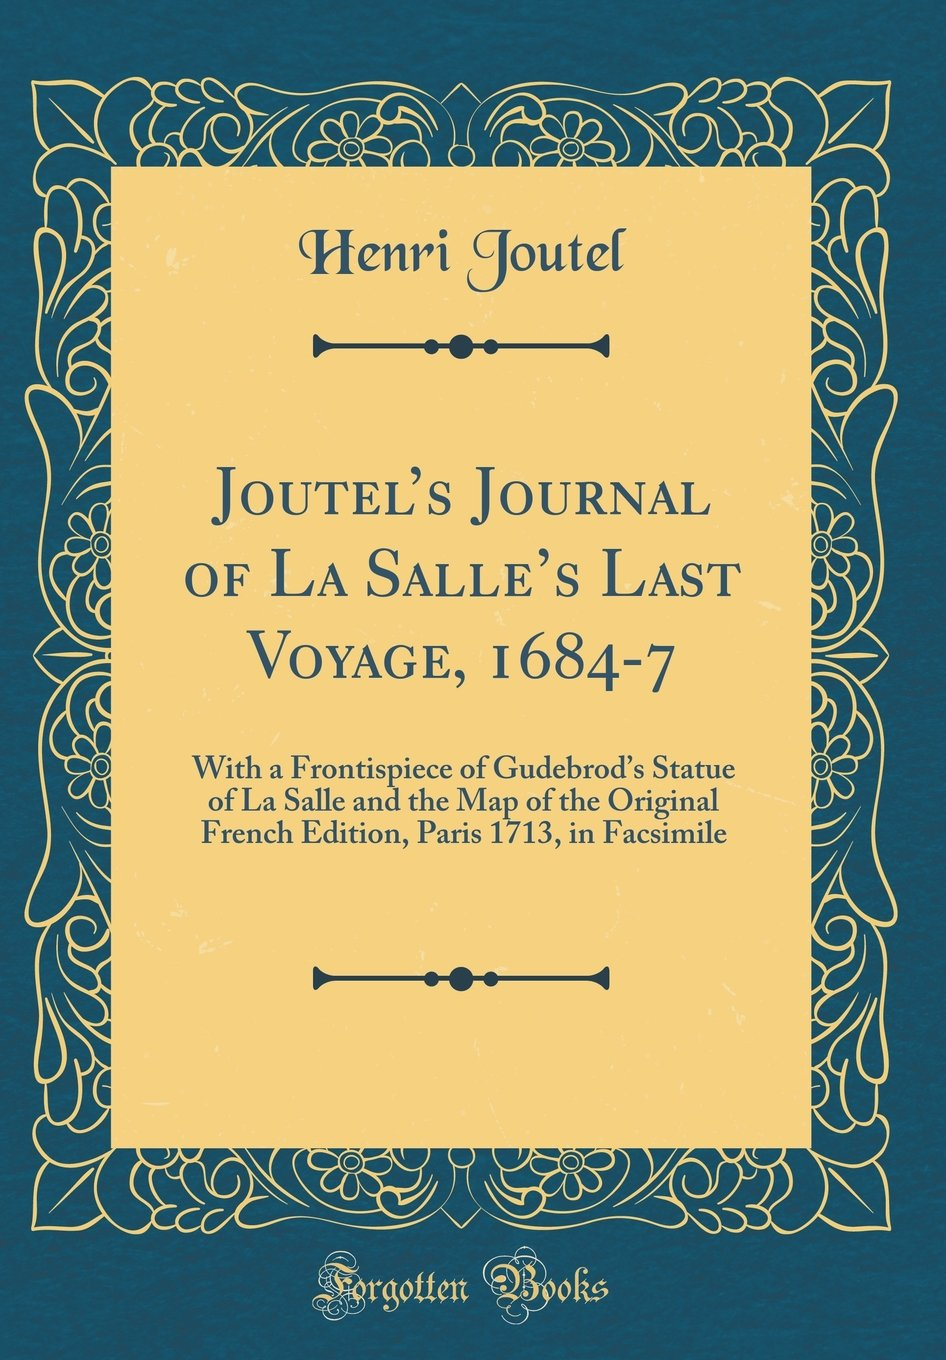 Joutels journal of la salles last voyage 1684 7 with a joutels journal of la salles last voyage 1684 7 with a frontispiece of gudebrods statue of la salle and the map of the original french edition nvjuhfo Choice Image